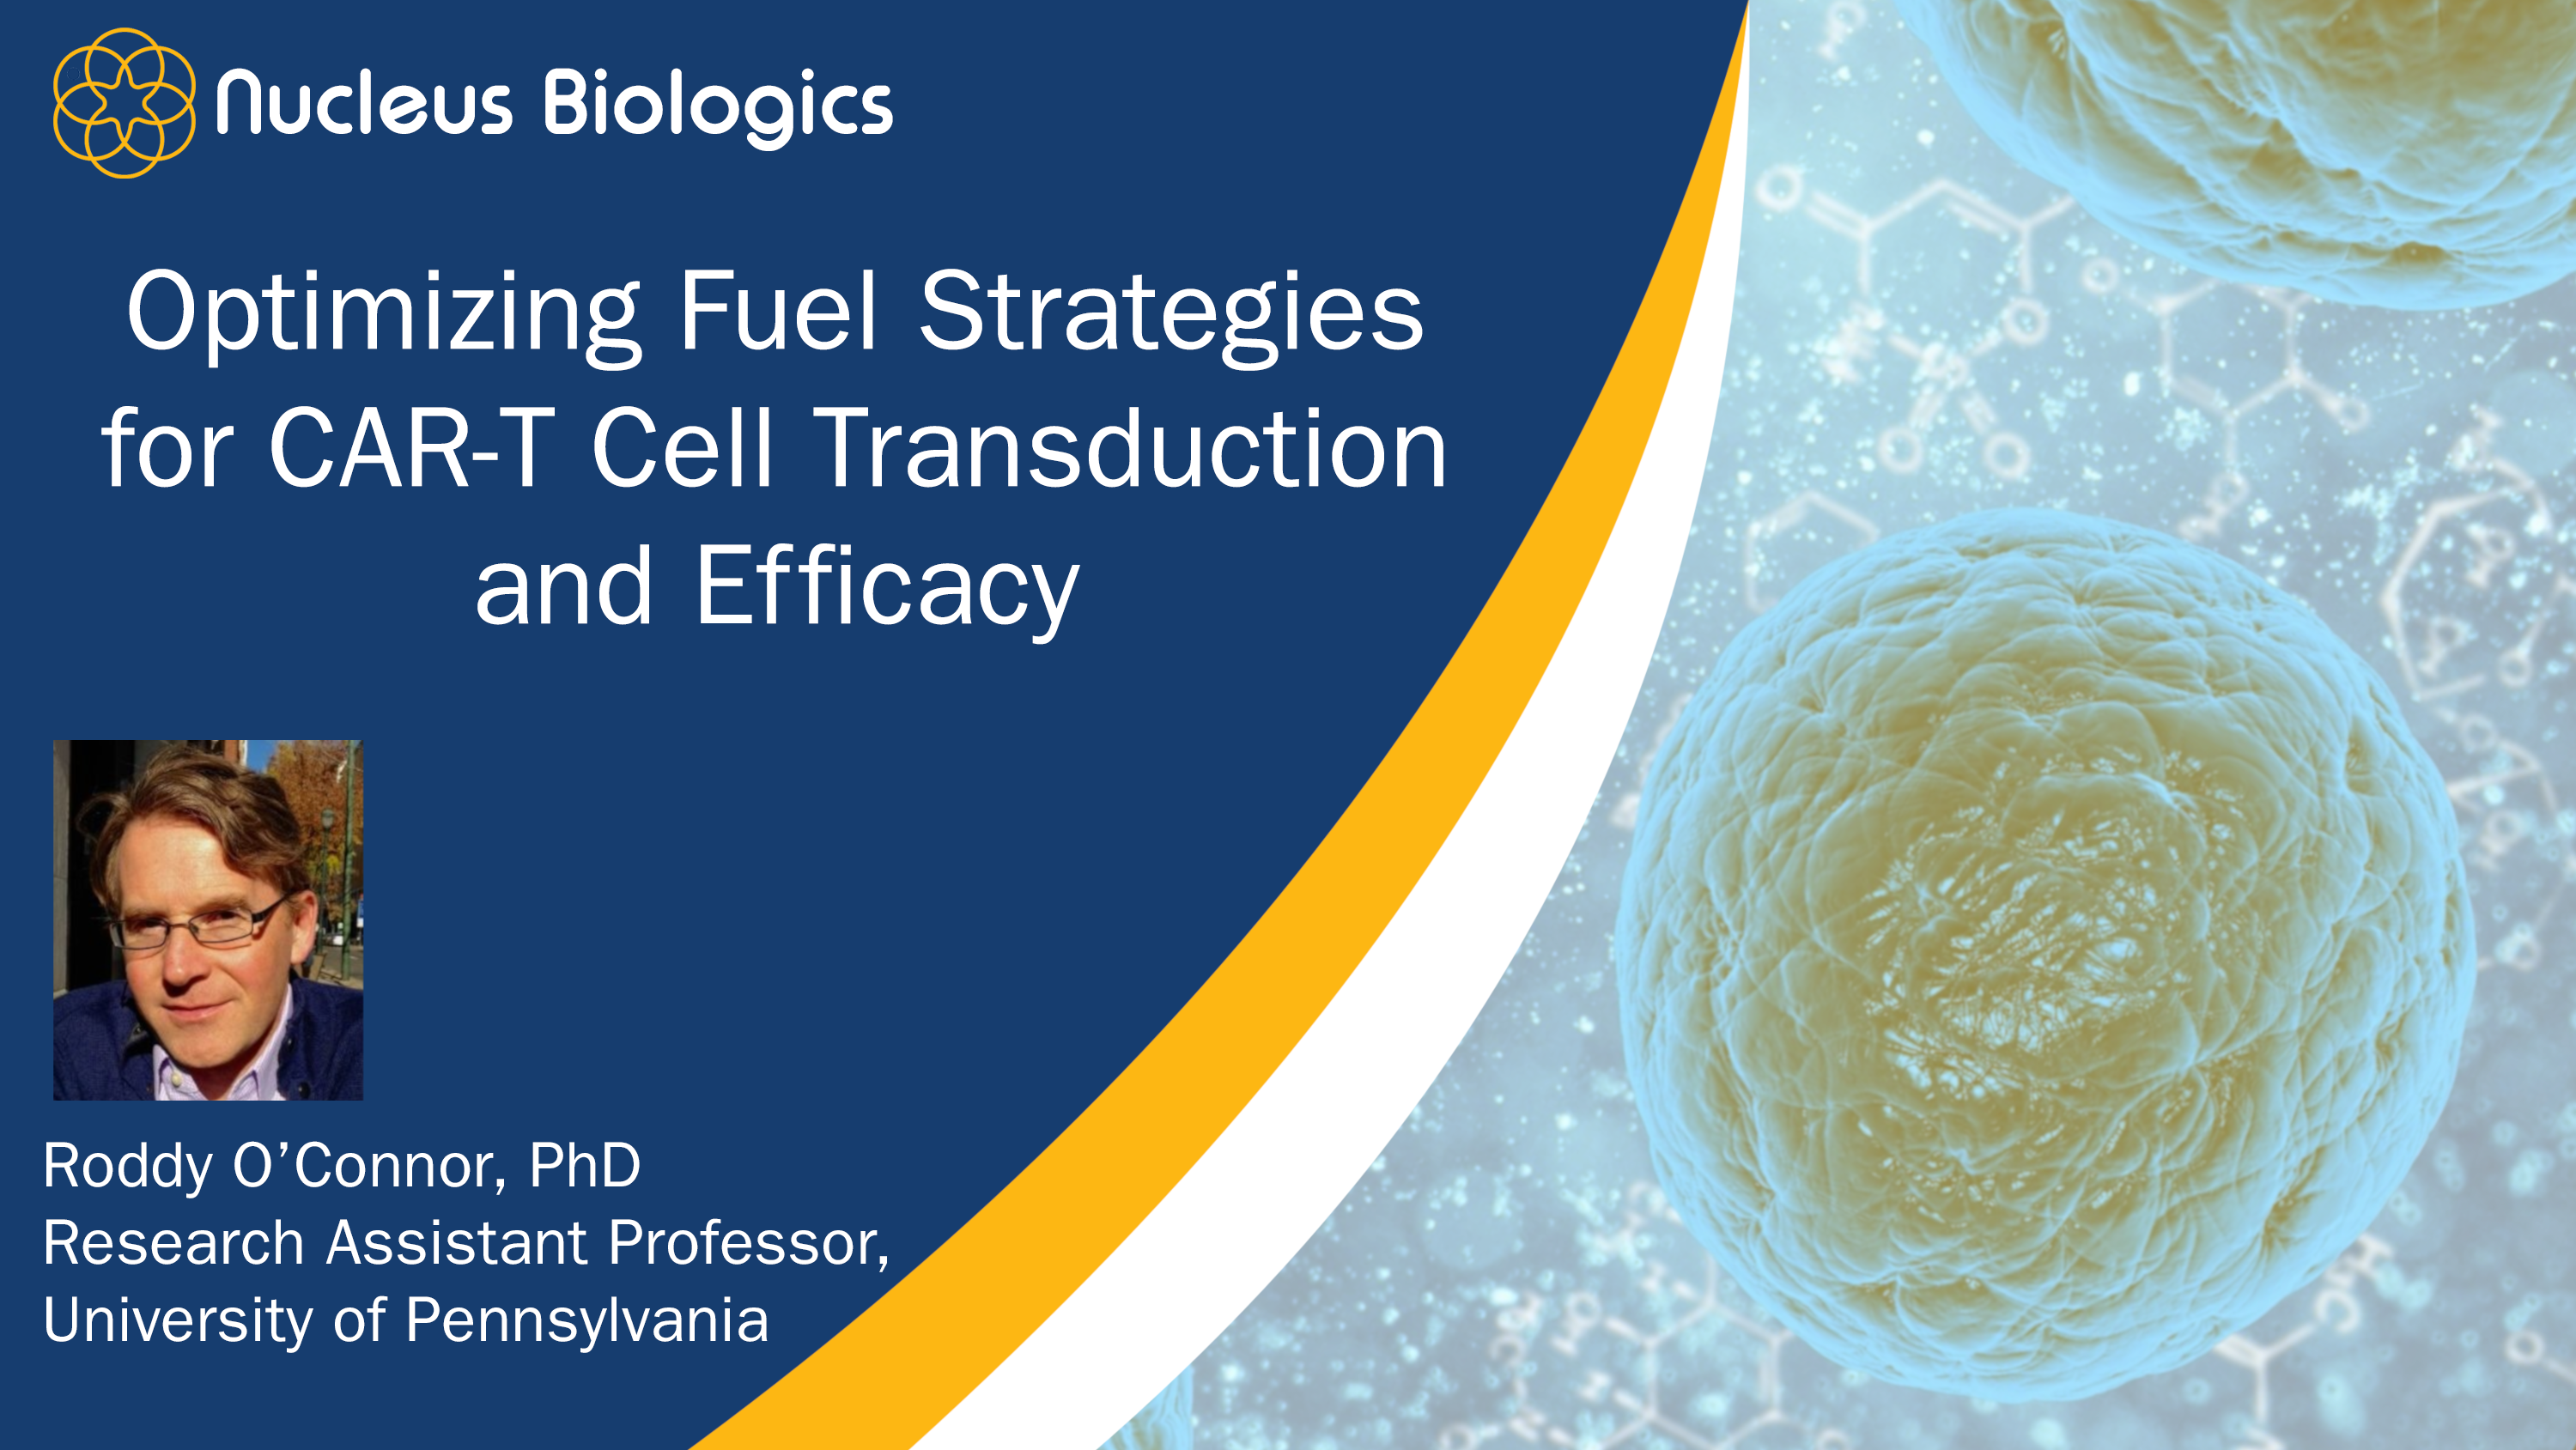 Optimizing Fuel Strategies for CAR-T Cell Transduction & Efficacy